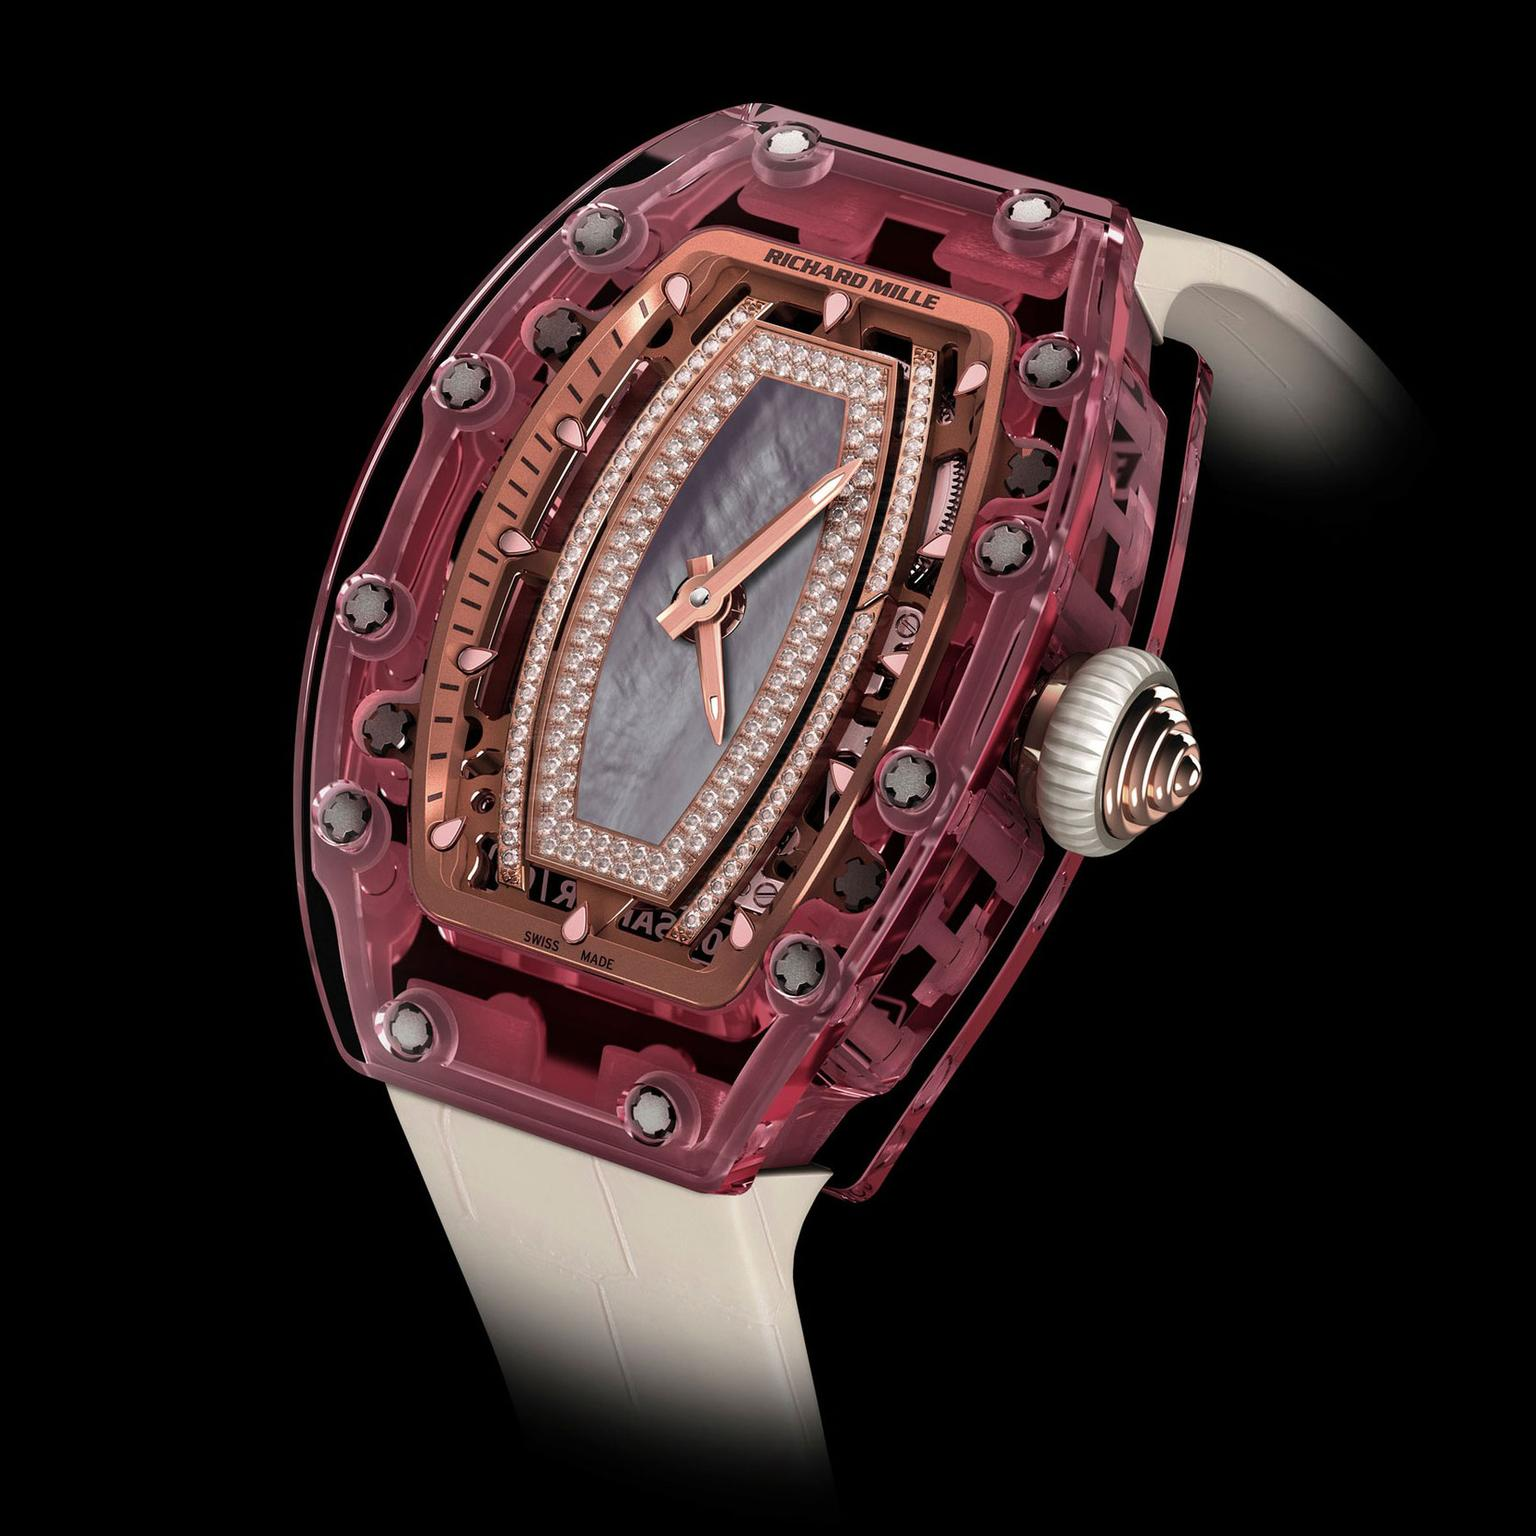 Valentine's Day Gift Ideas - Richard Mille rm-07-02 Pink Lady Sapphire Watch - gift ideas for women - luxury gifts for her - pink watches - luxury womens watches